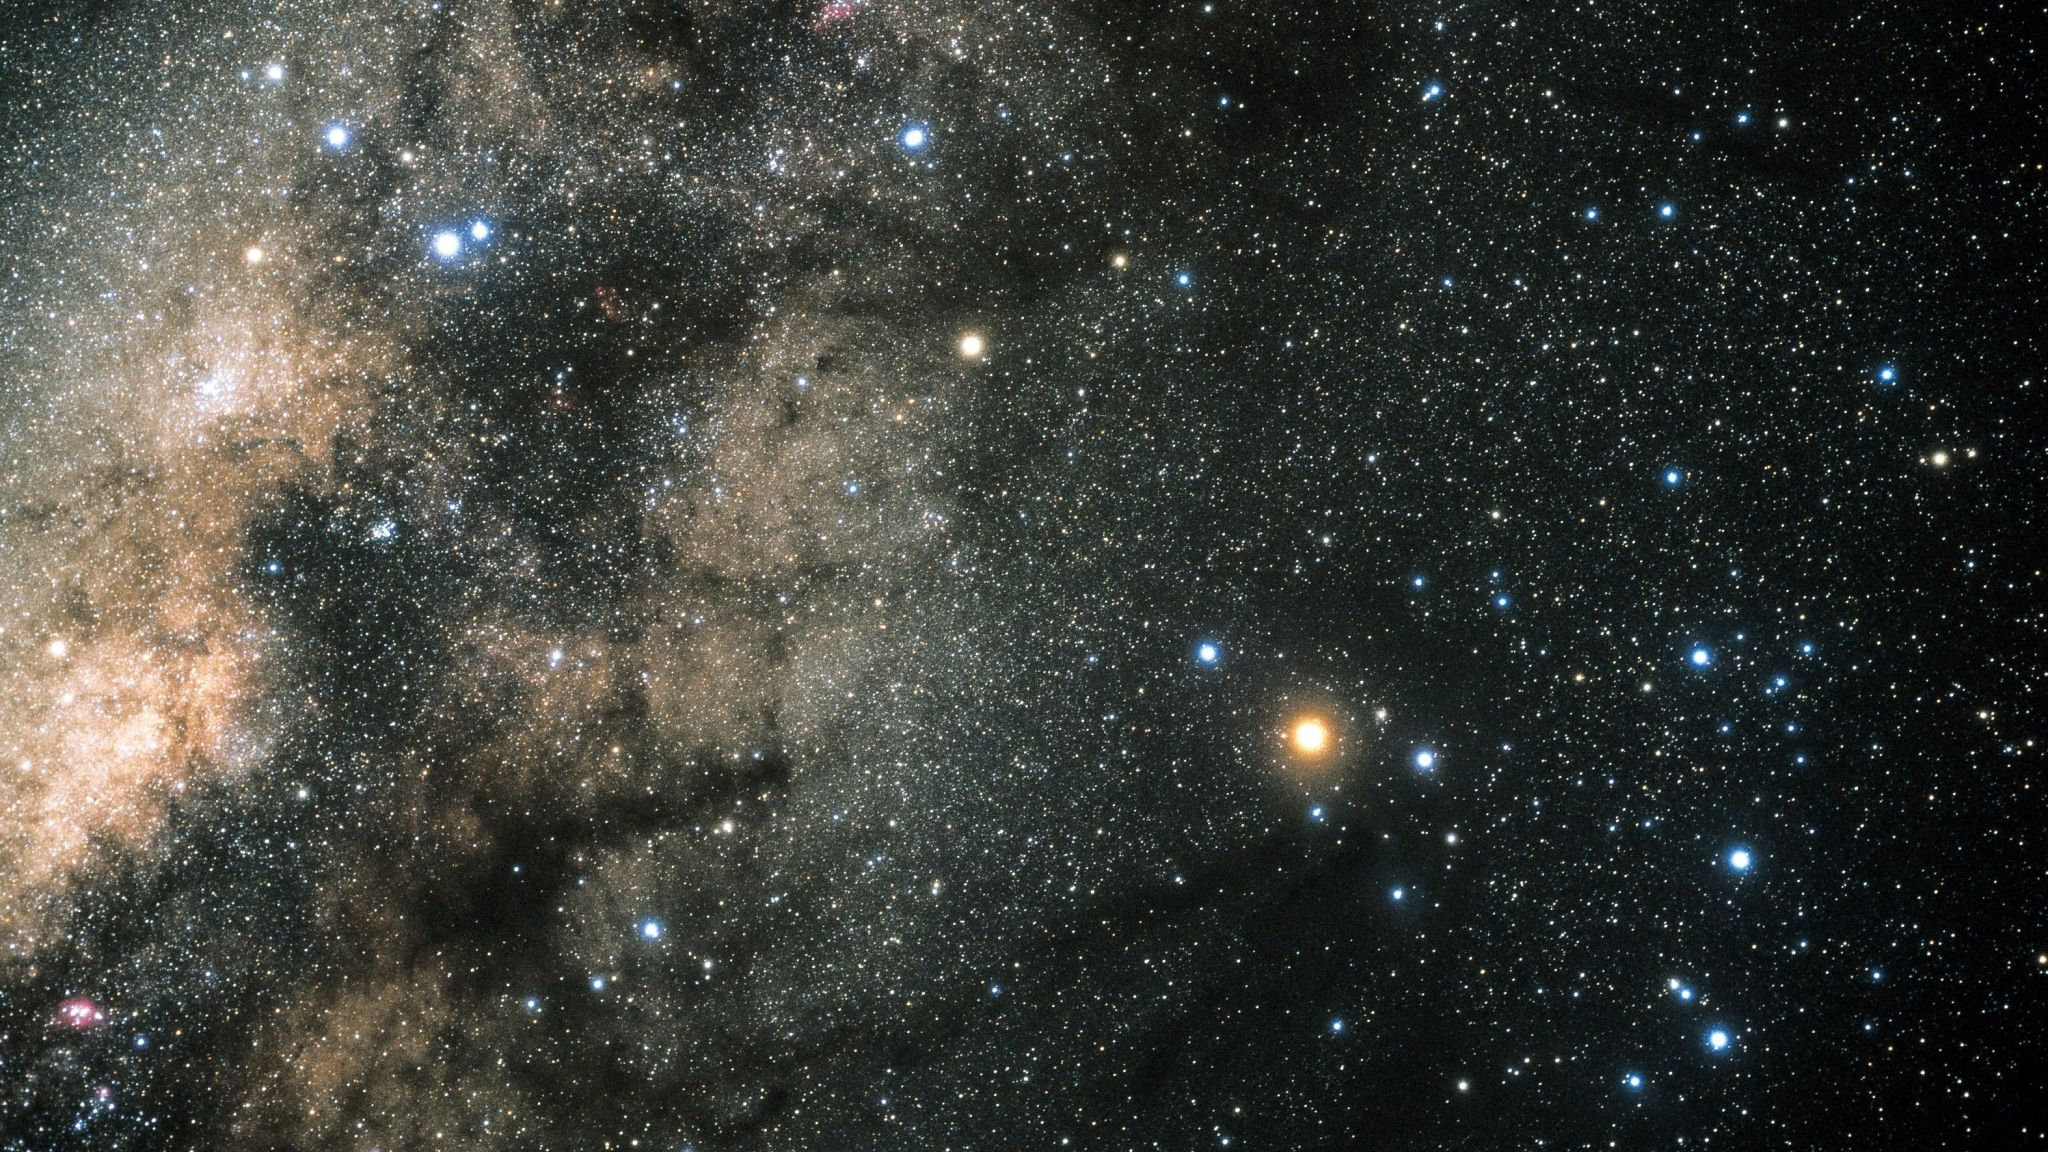 Galaxy Tumblr 1080p Wallpapers For Desktop 2048x1152 Px 202